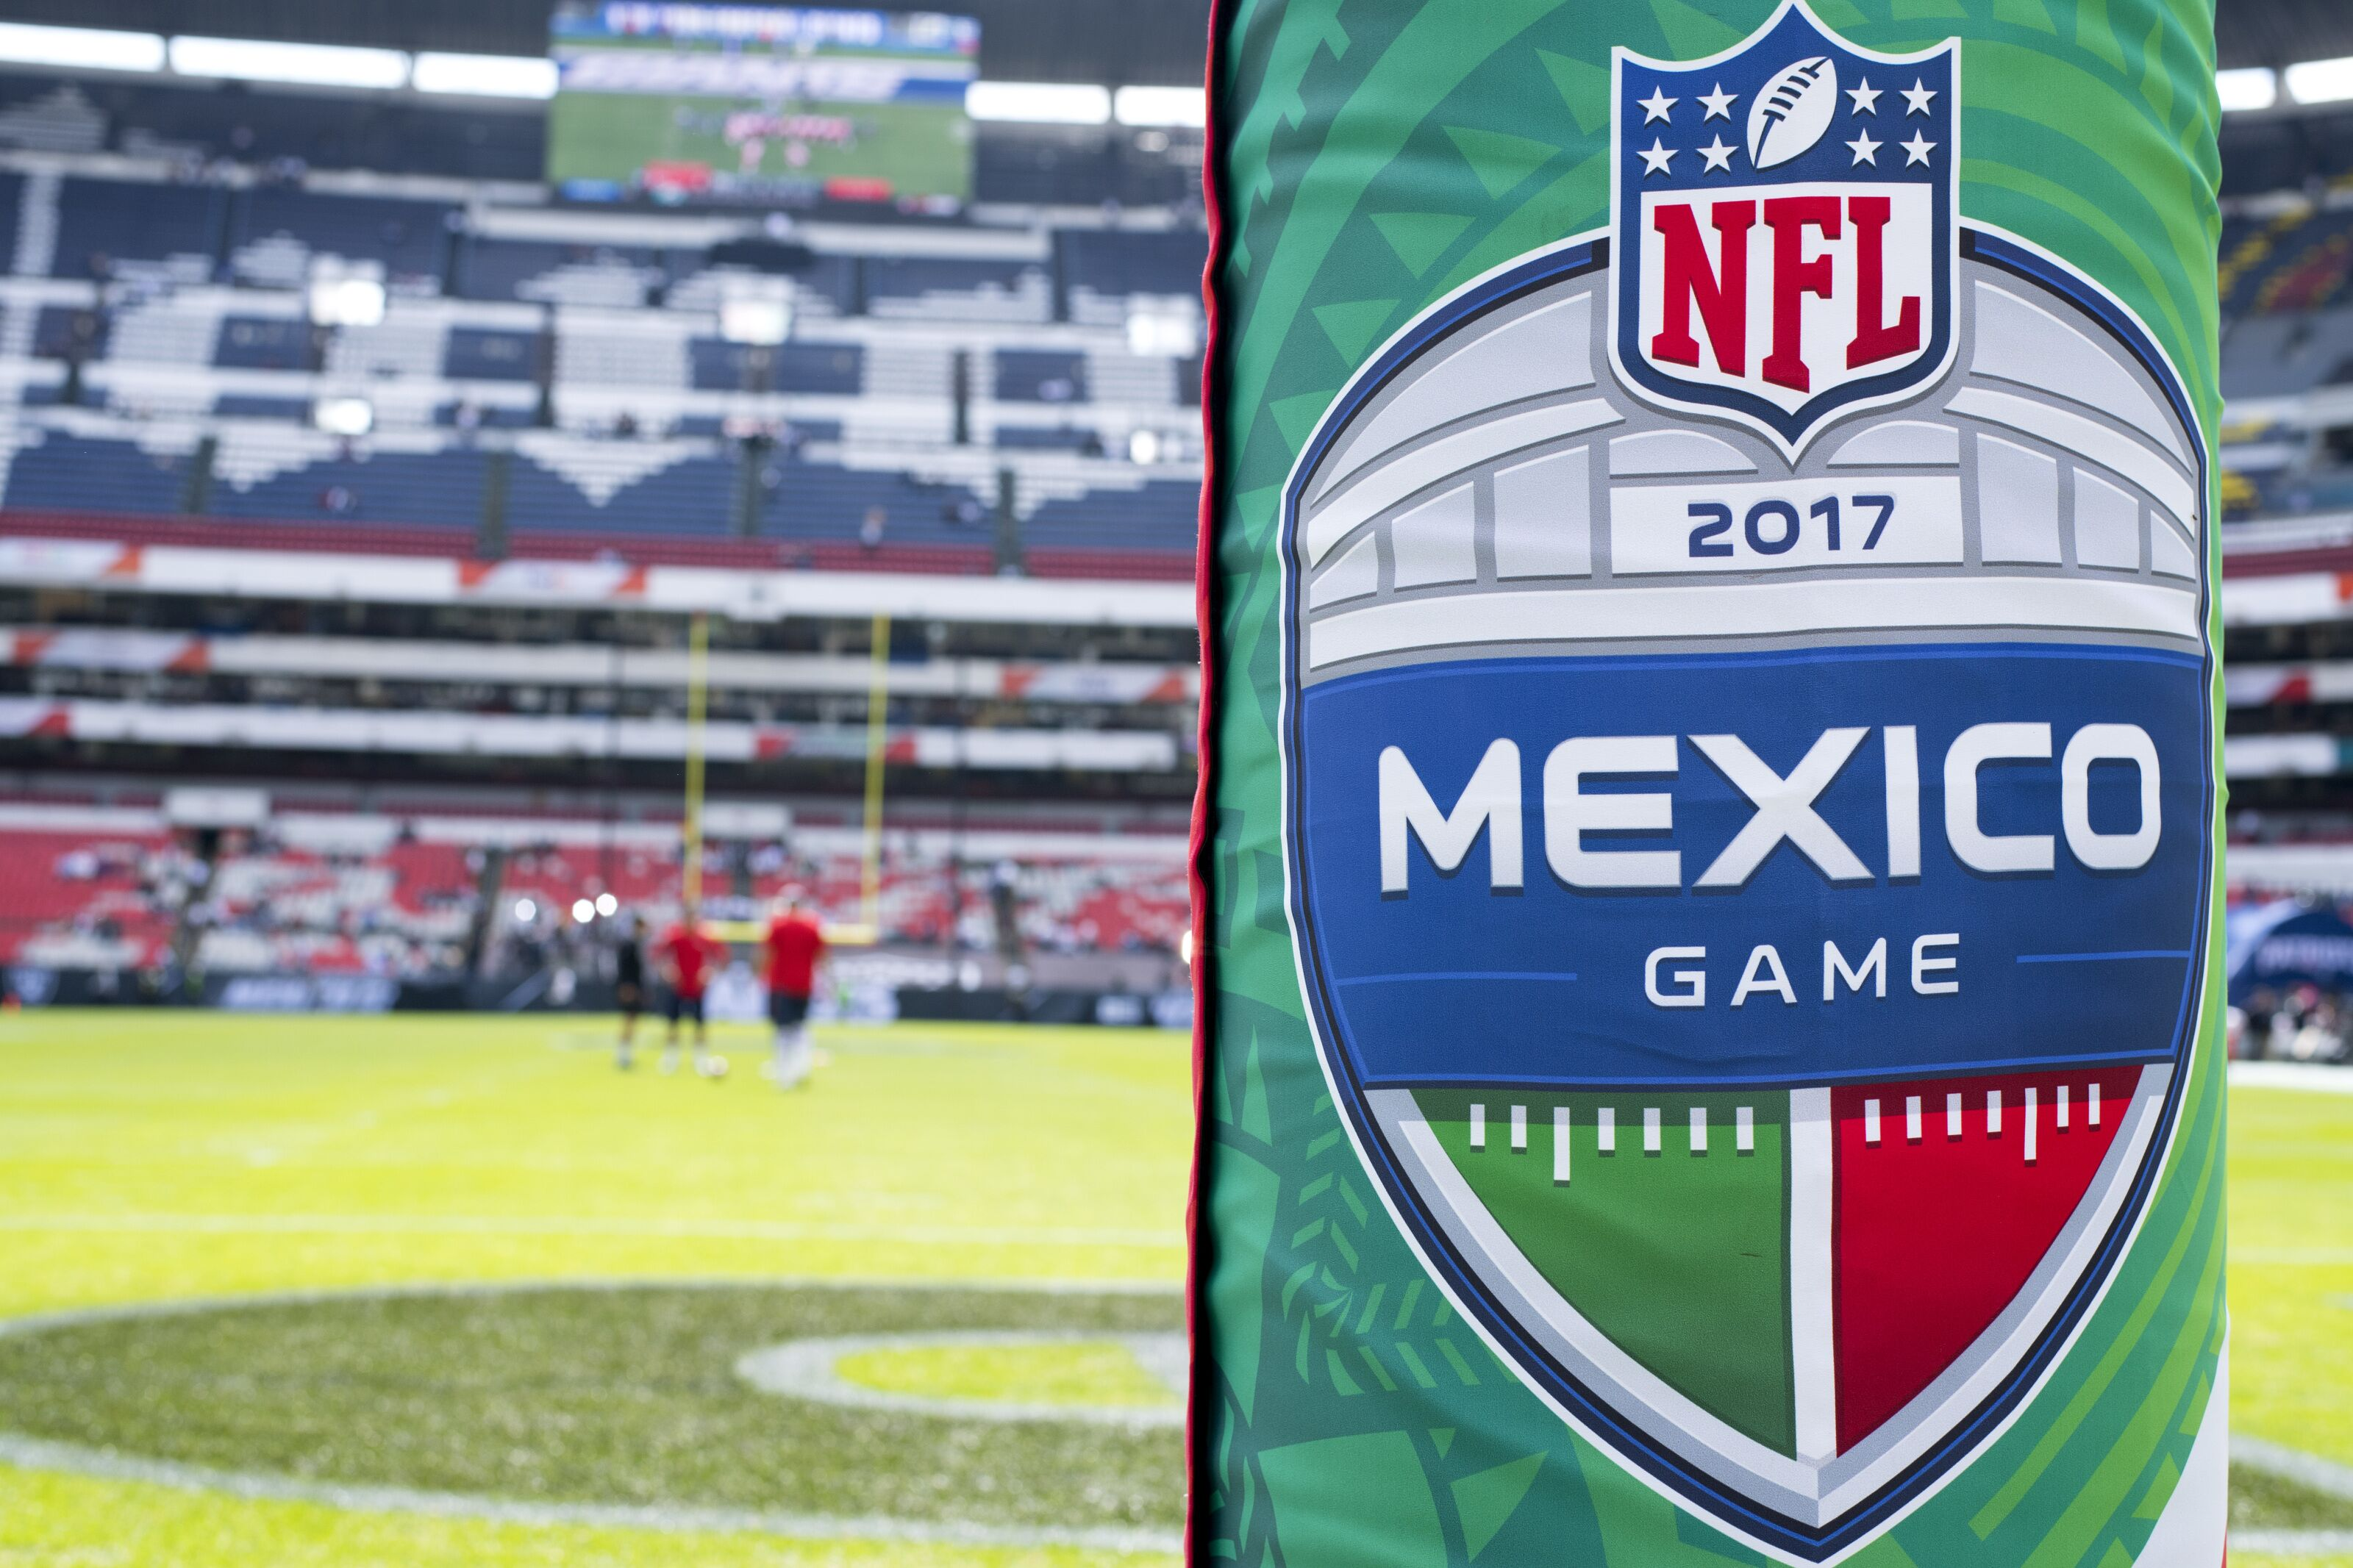 Nfl Schedule Leak Chiefs Rams To Play On Mnf In Mexico